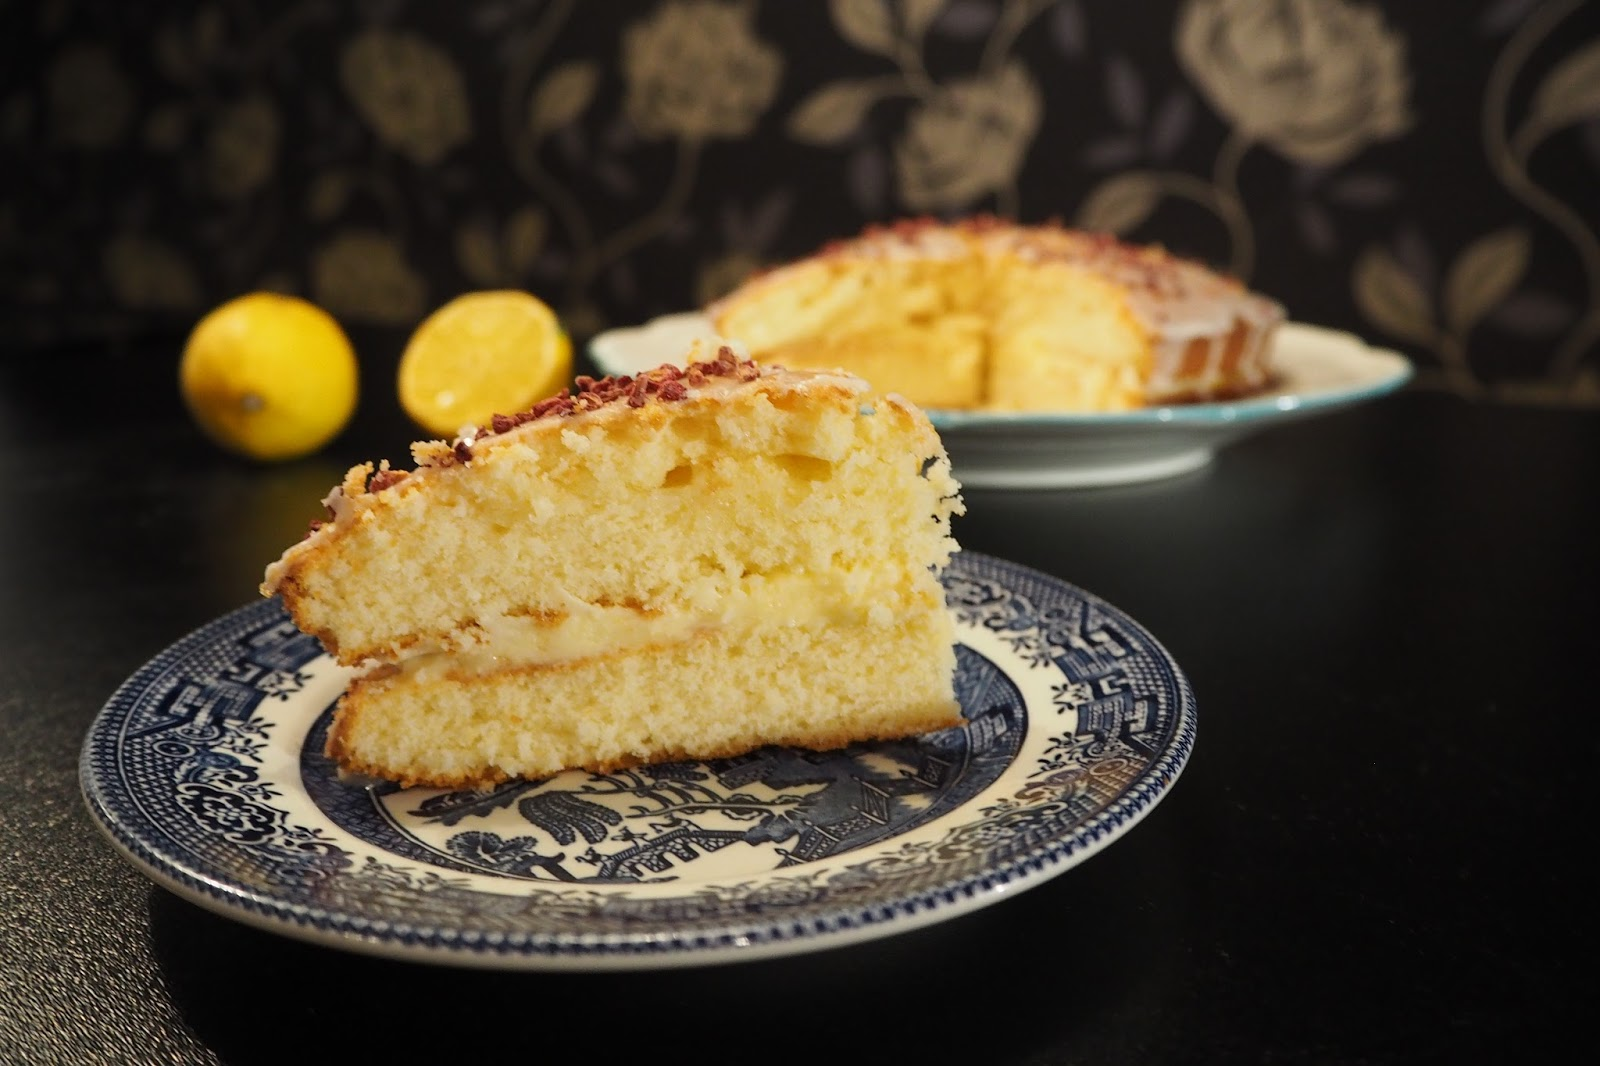 slide of lemon drizzle cake on blue plate